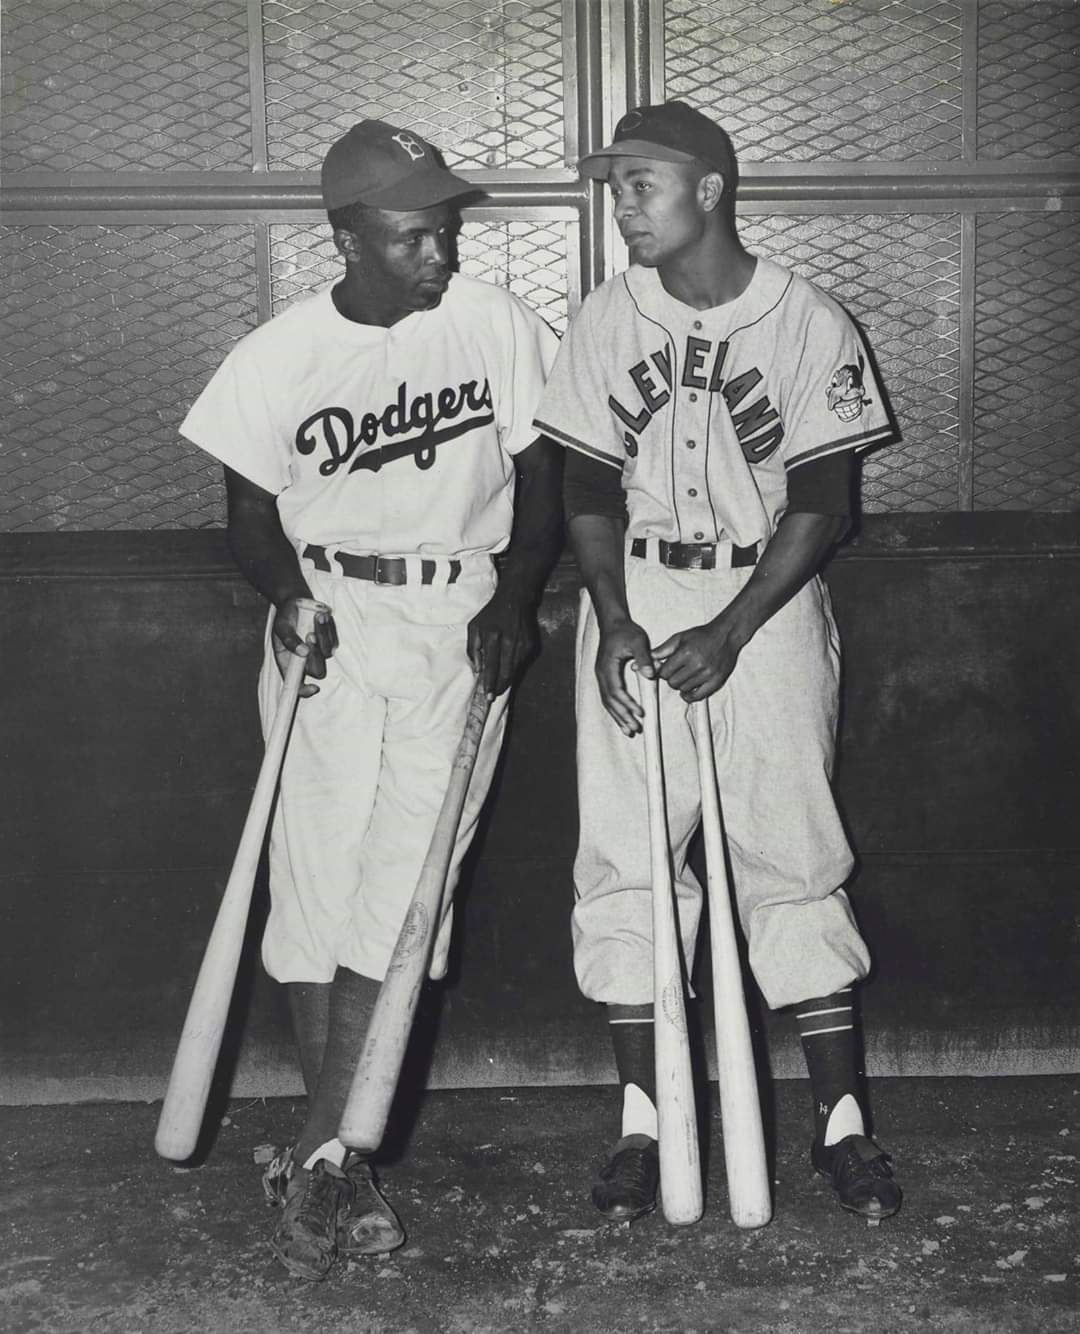 Jackie and Larry @Dodgers @Indians https://t.co/XNLS7eH4KP